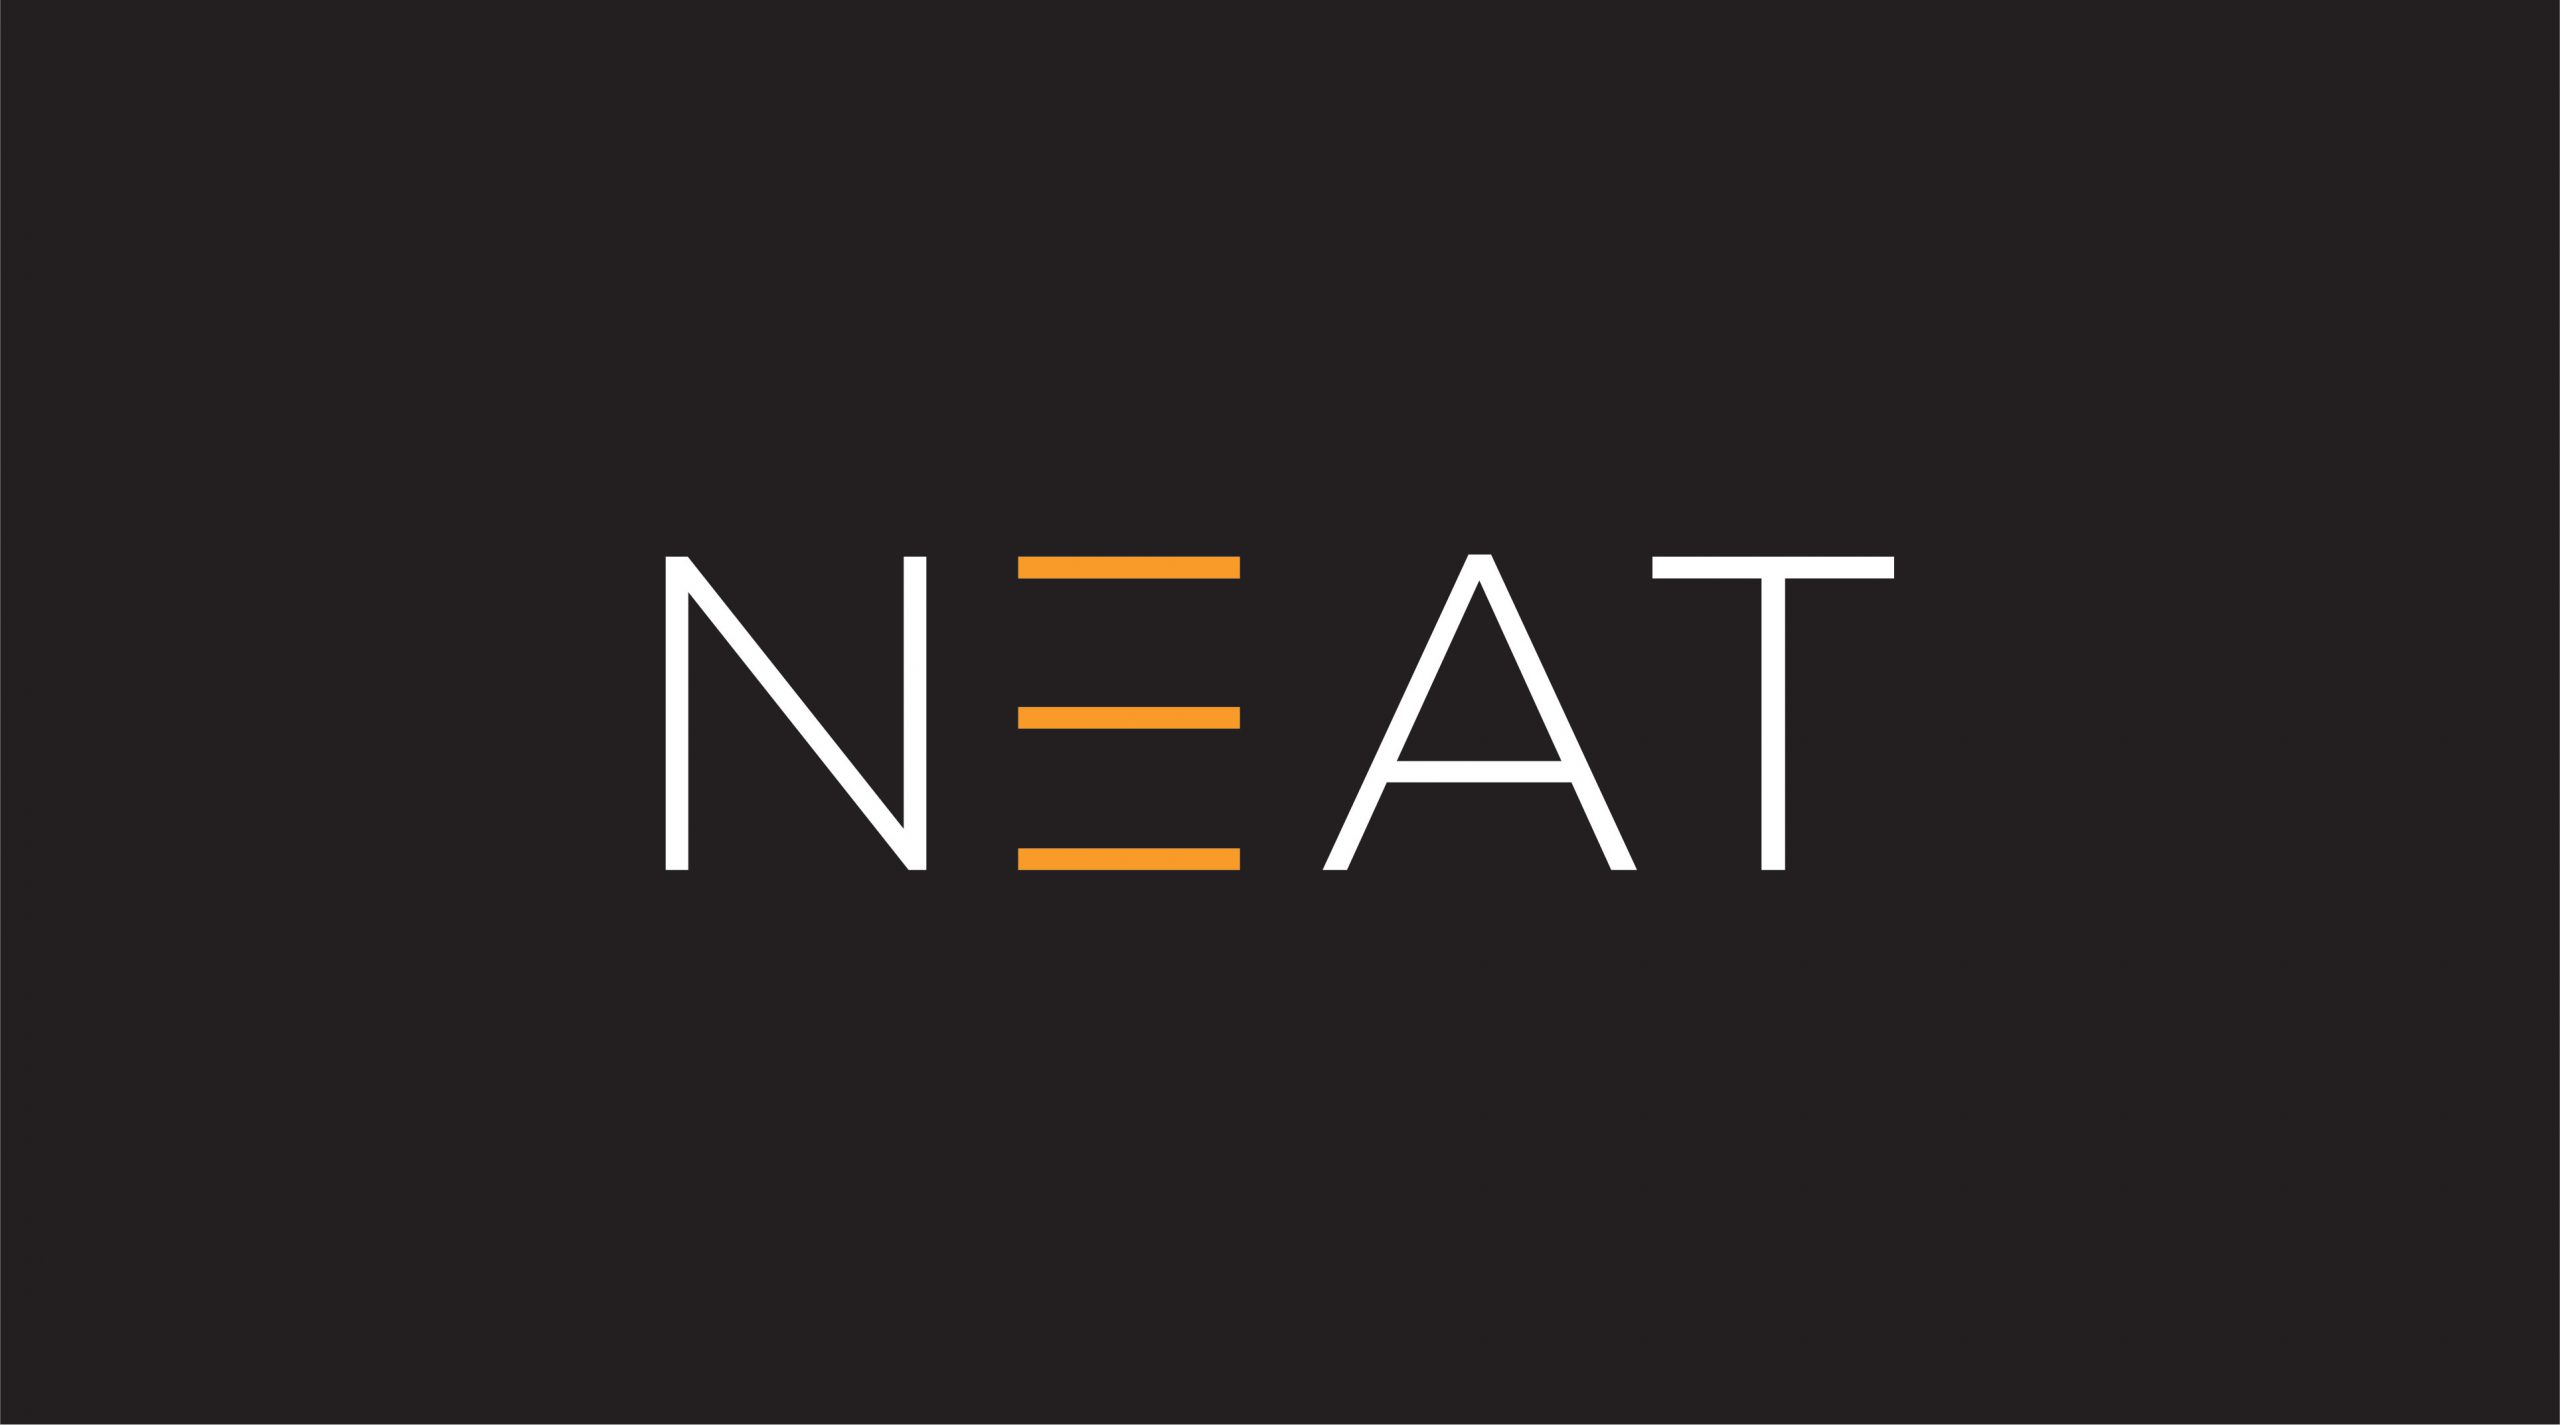 neat-logo-design-notfromhere